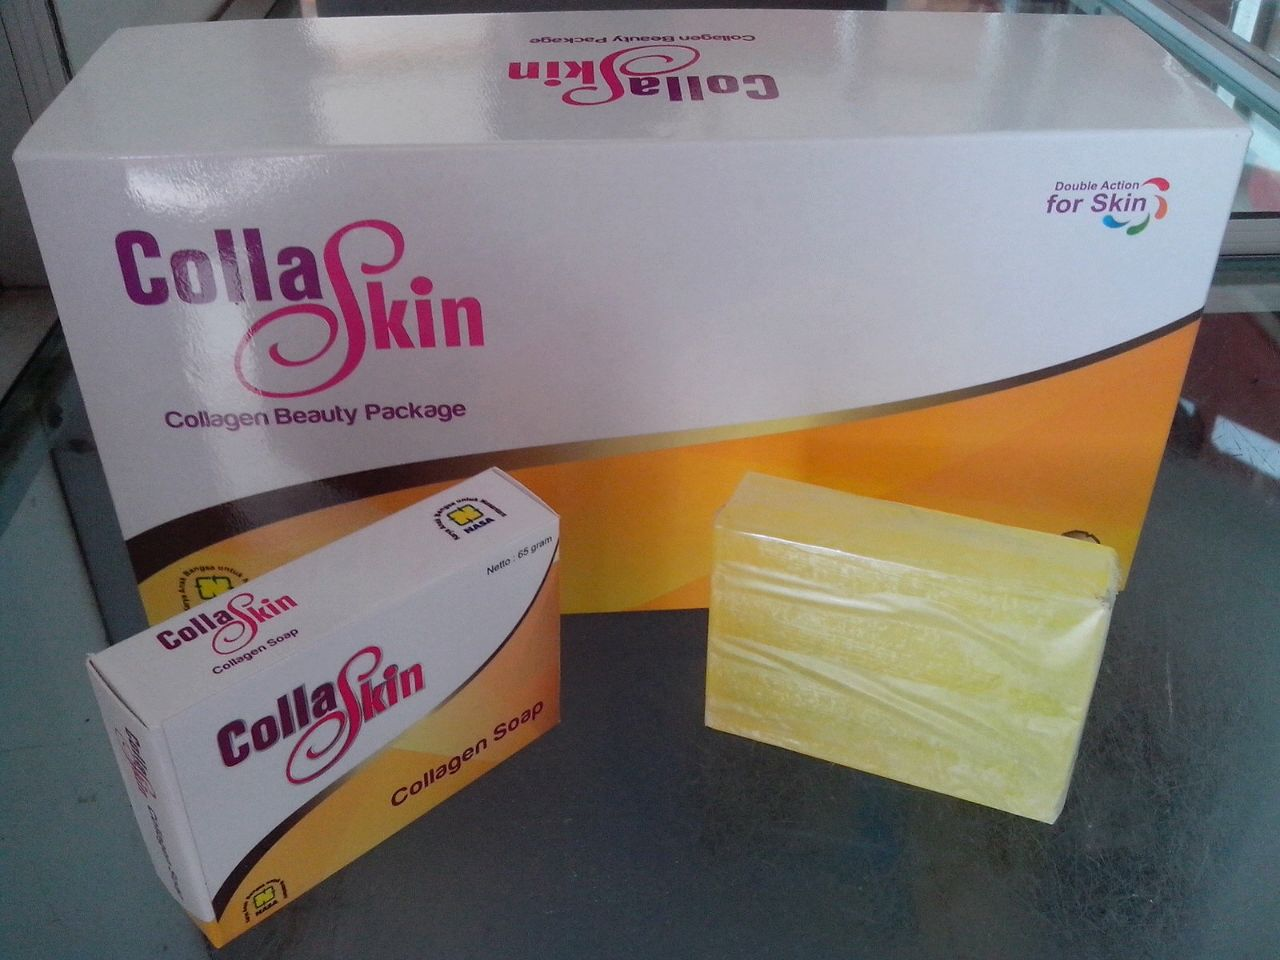 CollaSkin Collagen